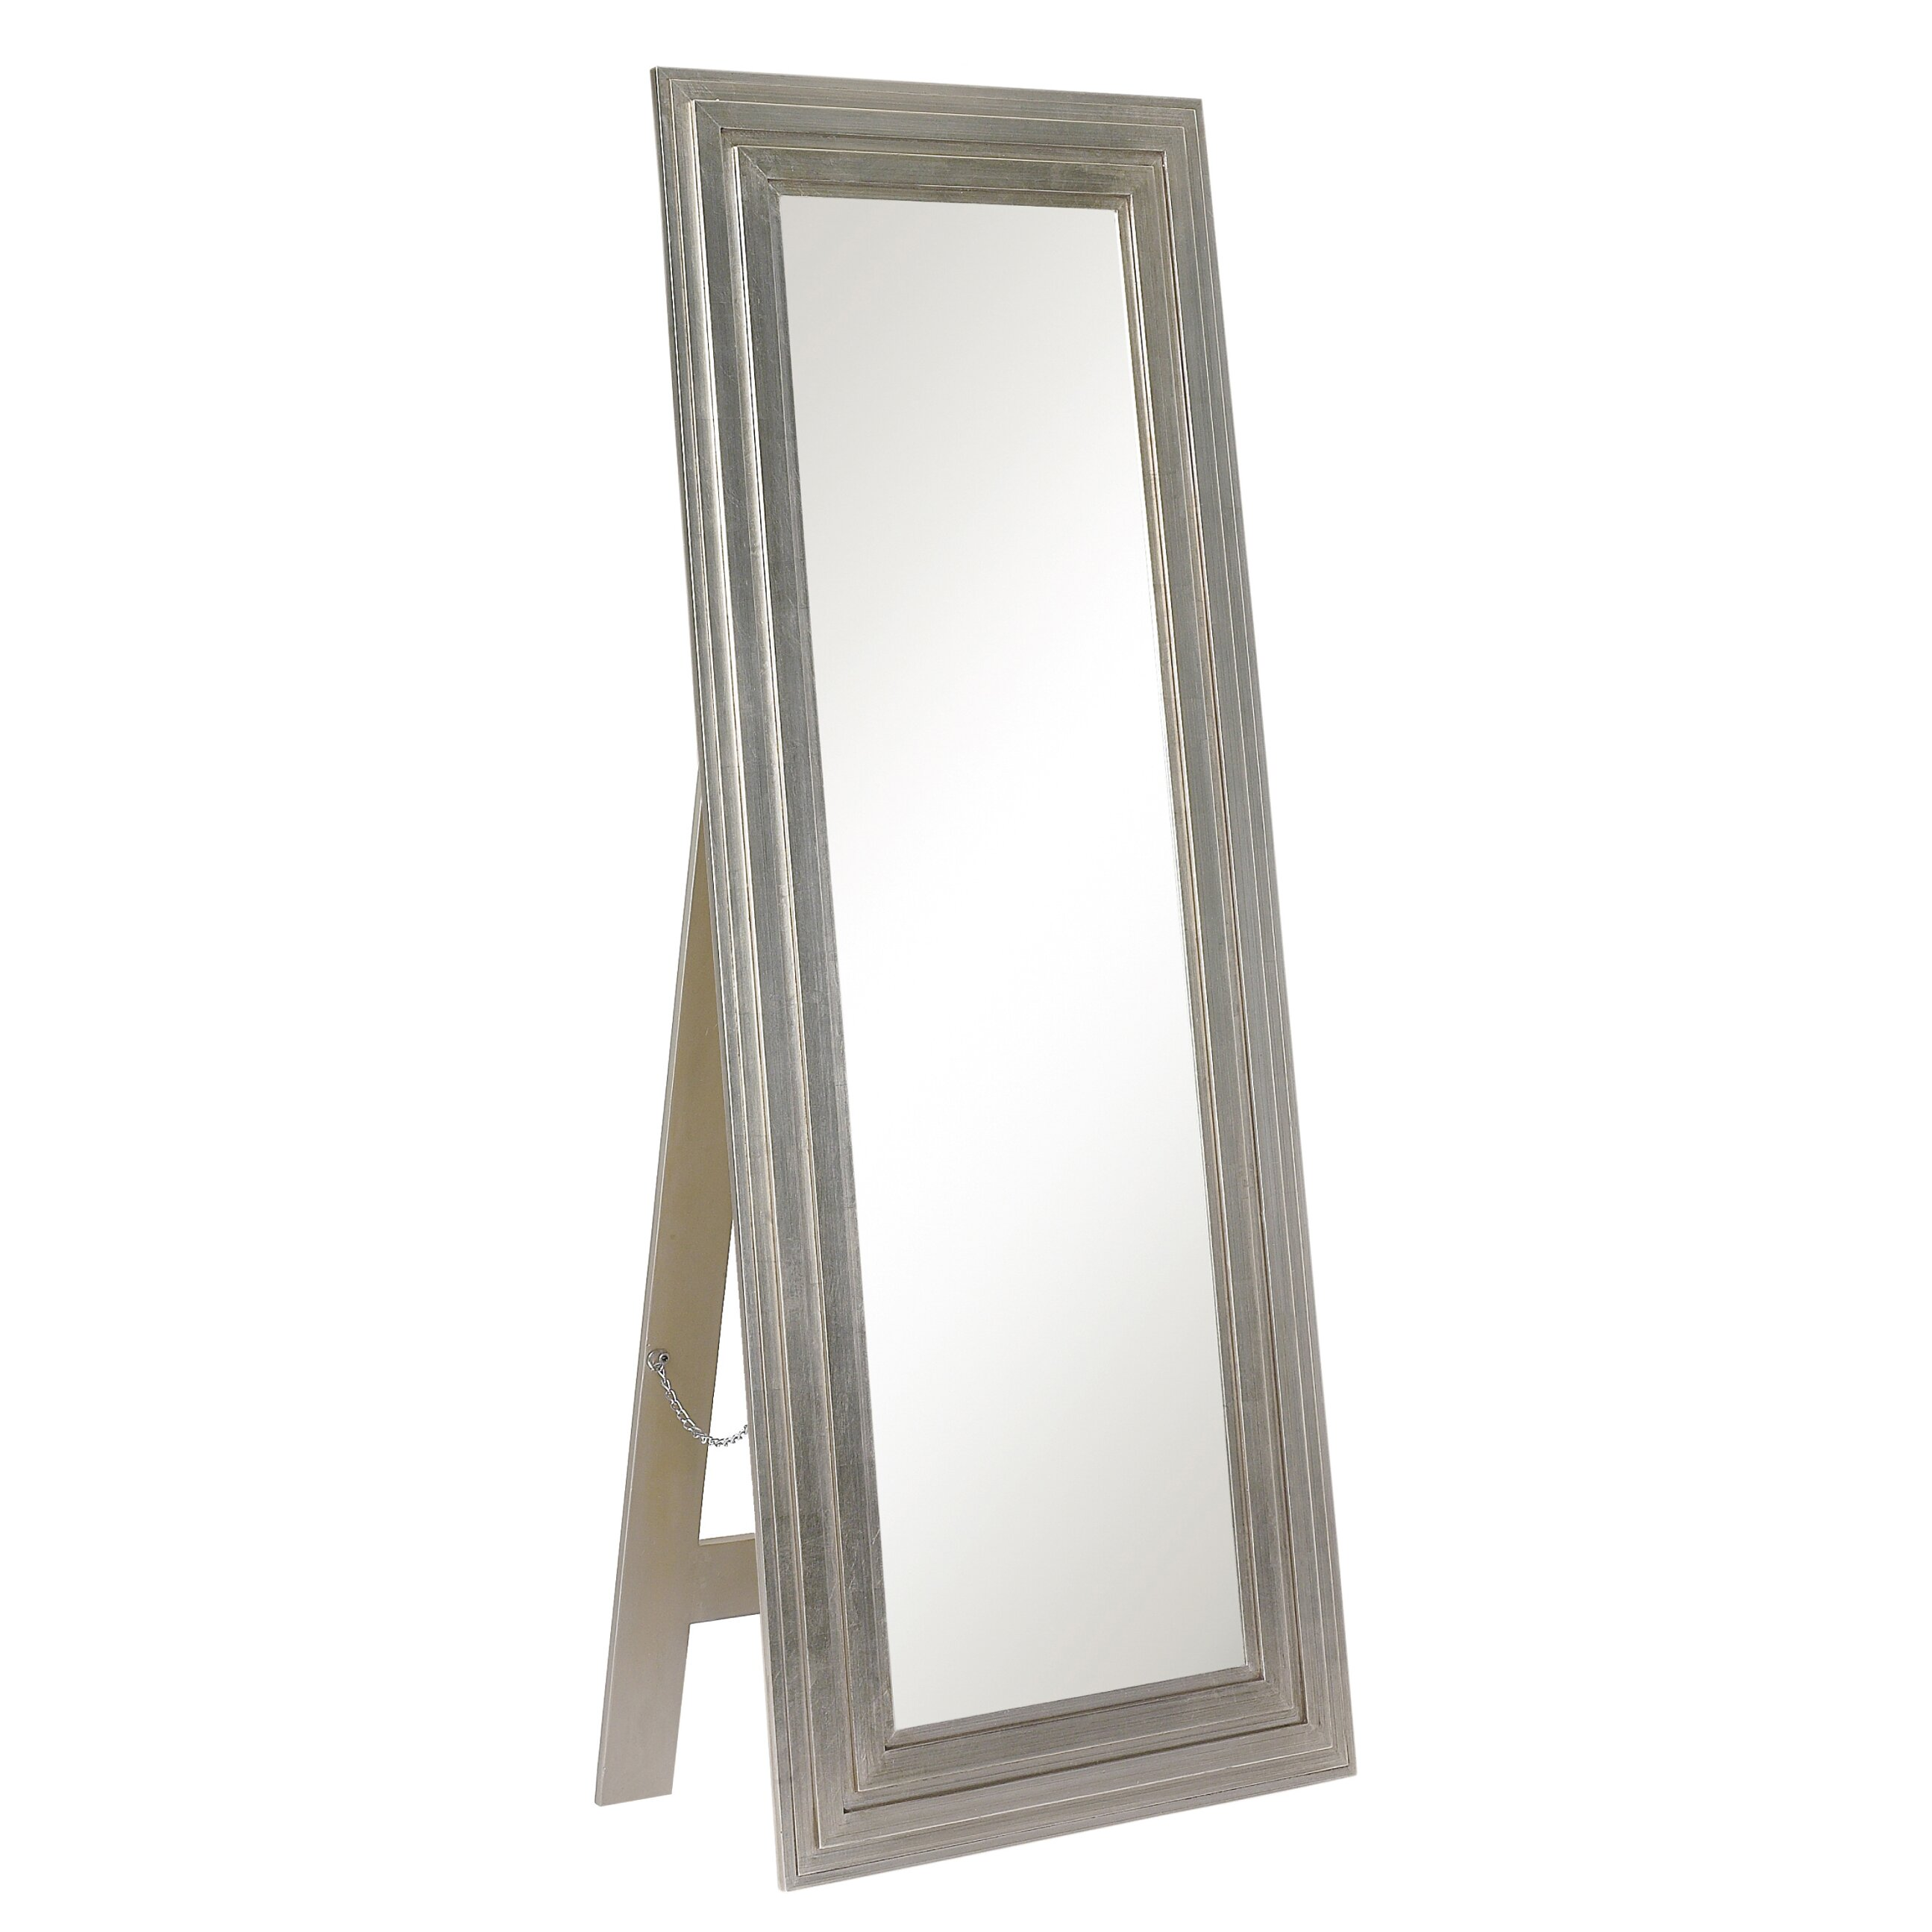 Silver full length floor mirror